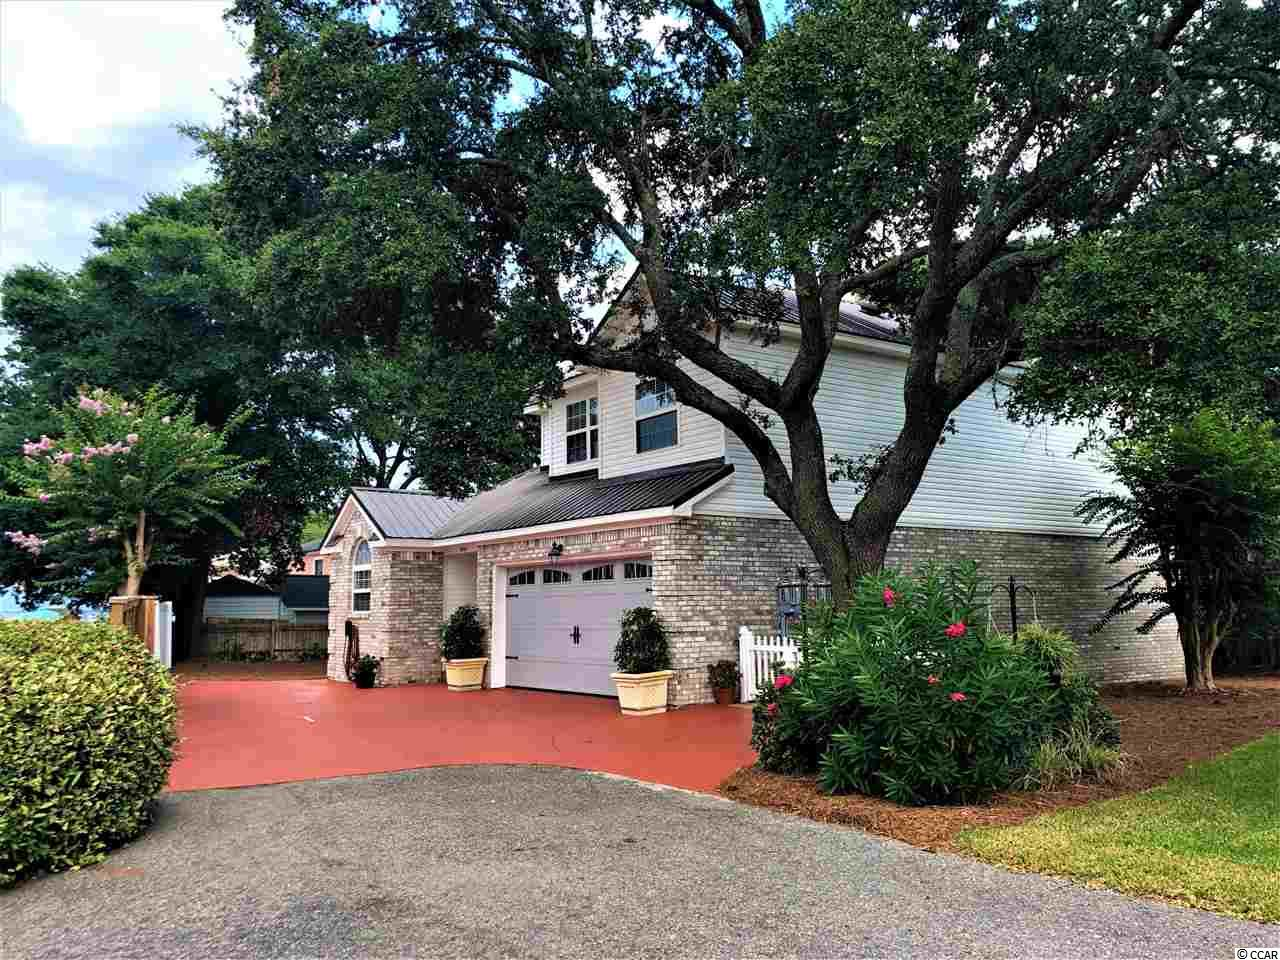 """Windy Hill - A """"Hidden Gem"""", """"Absolutely Gorgeous"""" and """"Meticulously Maintained"""" is this 4 BR, 3 1/2 BA home, 2 car garage, nestled among live oaks on a quiet private street, in the very desirable area of """"Windy Hill"""" in North Myrtle Beach.  NO HOA fees, low maintenance Brick/Vinyl Siding and less than 500 Ft to Ocean Blvd, one is pressed to find anything like it near the beach.  This home is """"like new"""" with """"Major Renovations"""", all New in 2018:  All New (HVAC with NEST smart thermostat, Metal Roof, Outside Storage Bldg, Screened Porch, Bricked Patio, Hurricane Garage door, Utility Room in Garage, new Tile Flooring in Garage, Interior painted throughout, New Ceramic Tile throughout, Carpet in Bedrooms, Downstairs Half-Bath remodeled, Granite Counters in Kitchen, New Whirlpool Kitchen Appliances: Double Oven, MWO, DW, Refrigerator, New Kitchen sink, Gas Logs and Firebox in Living Room, new Light Fixtures, new Ceiling Fans, Murphy Bed in 4th upstairs bedroom, new Easy-Clean Toilets, new Window Blinds, Paved Golf Cart parking and Picket Fence added in front of home)!  New Water Heater in 2017!      What a quiet private setting for entertaining on your screened back porch. The home features an Open and Flowing Floorplan with Gas logged FP, Large Master Bedroom on First Floor, and Laundry room off Master Bath.  THIS HOME IS A MUST SEE!  DON'T LET THIS ONE GET AWAY!  TOO MUCH TO OFFER!  YOU WILL LOVE IT!"""